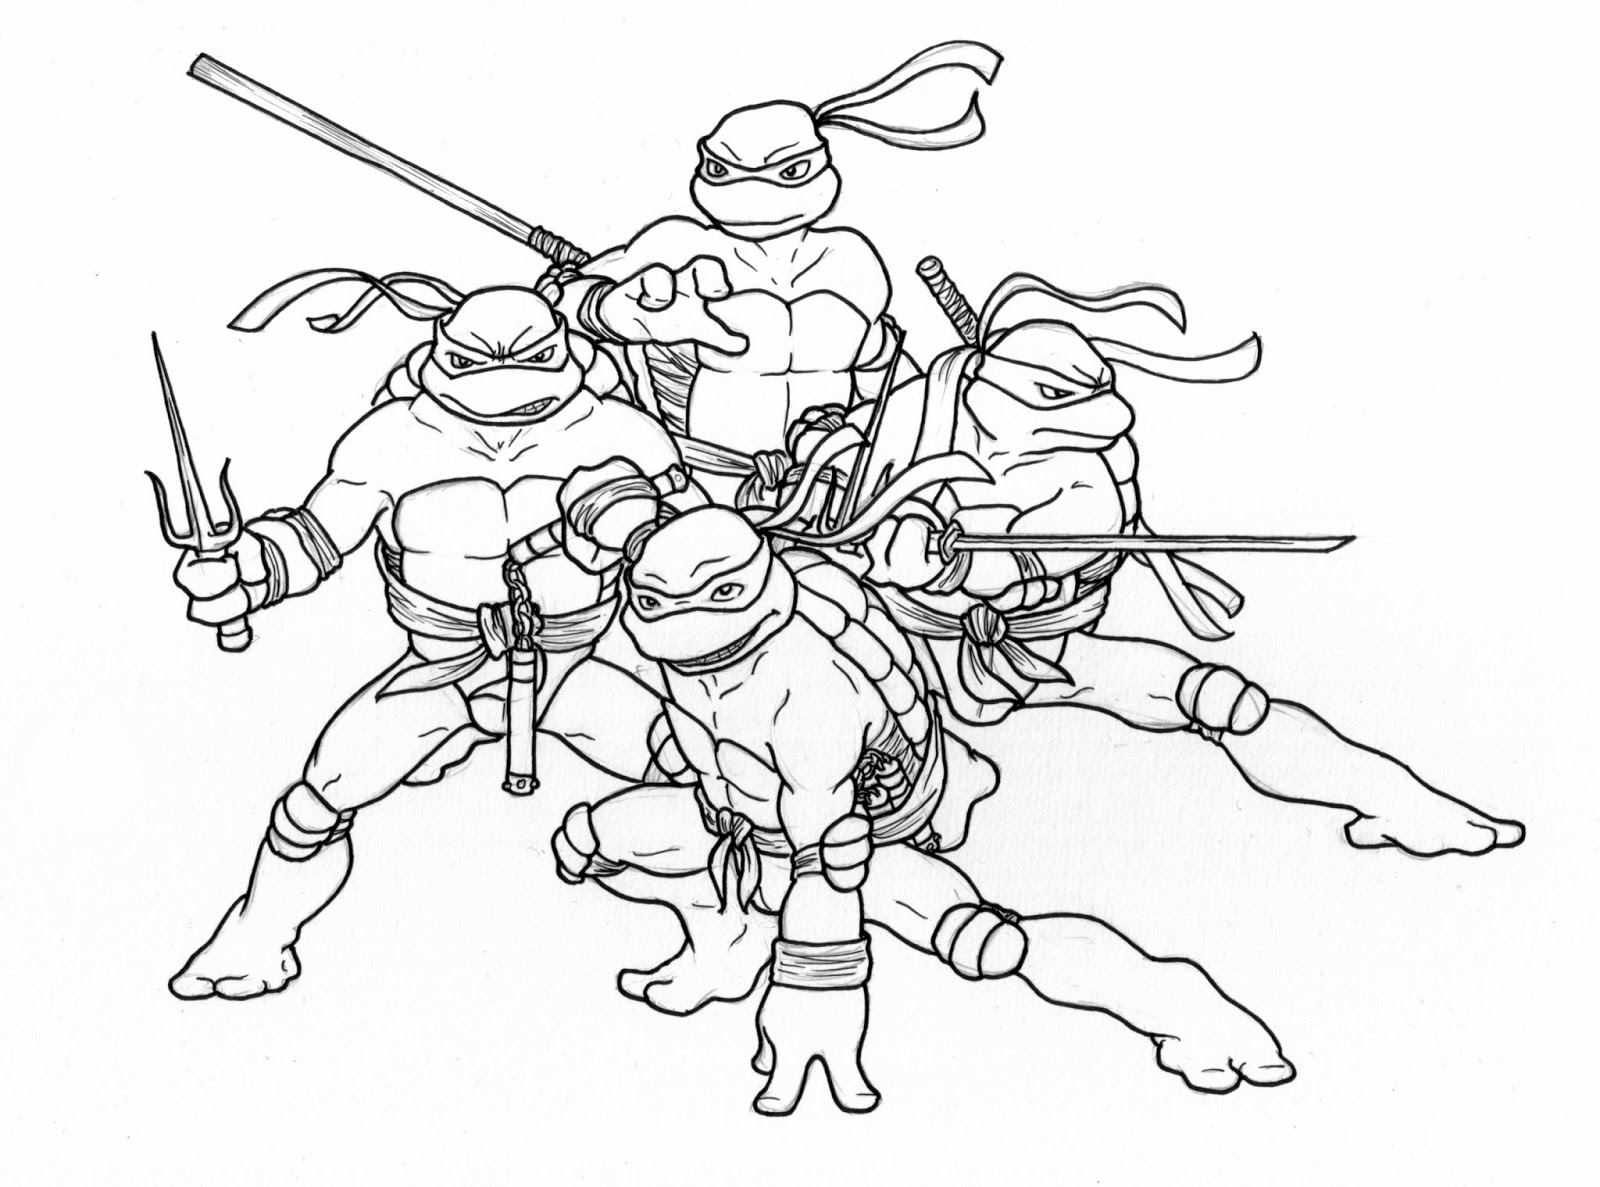 Coloring Pages Ninja Turtles : Free coloring pages of ninja turtles